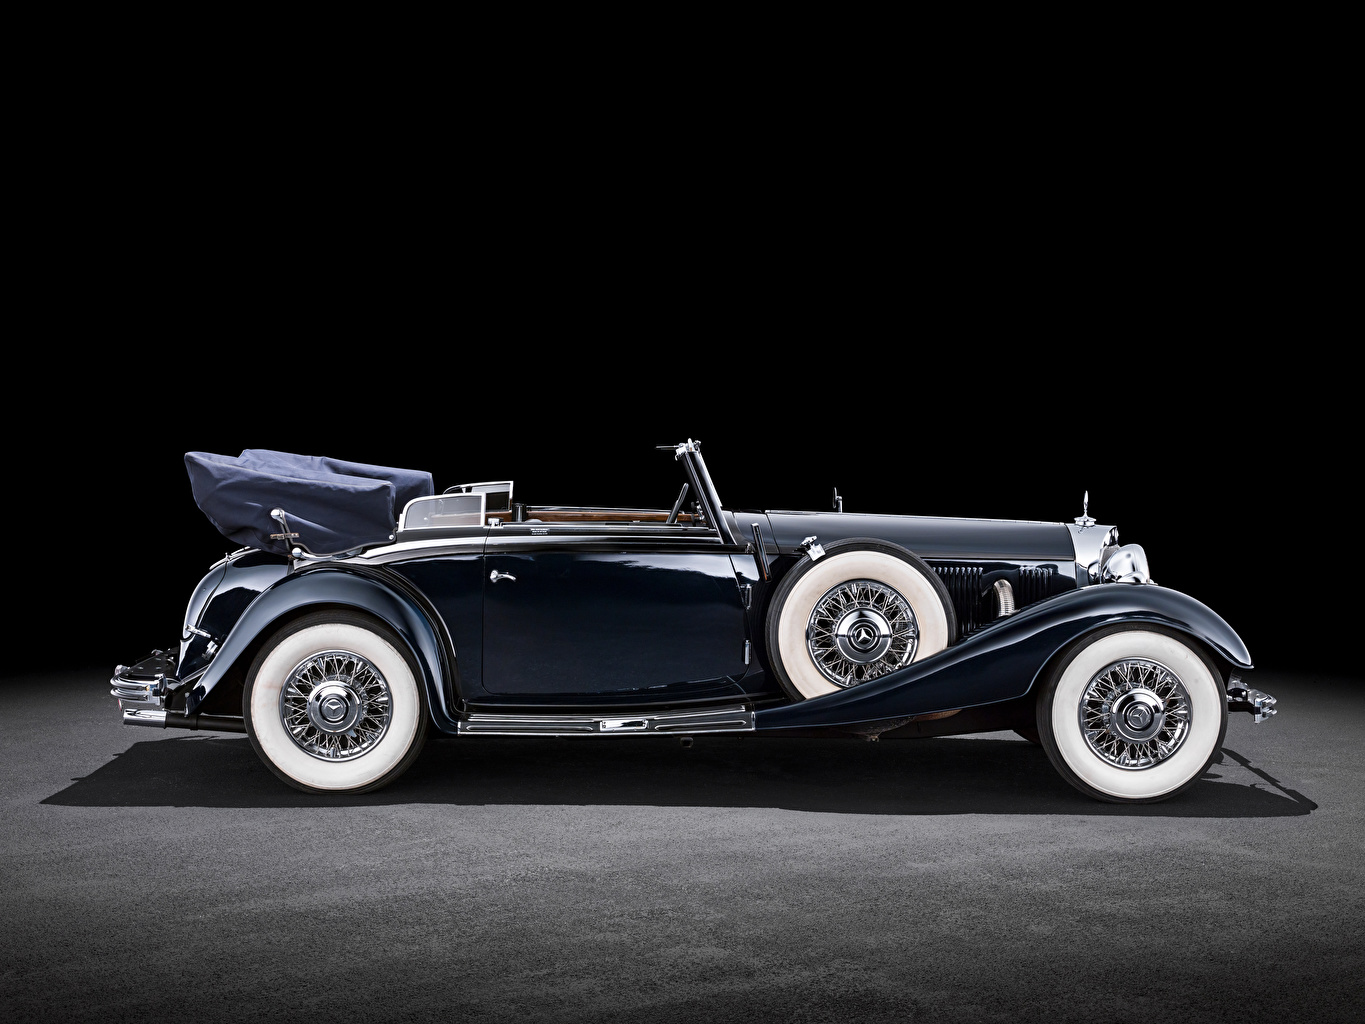 Photos Mercedes-Benz Convertible vintage Side Cars Cabriolet Retro antique auto automobile